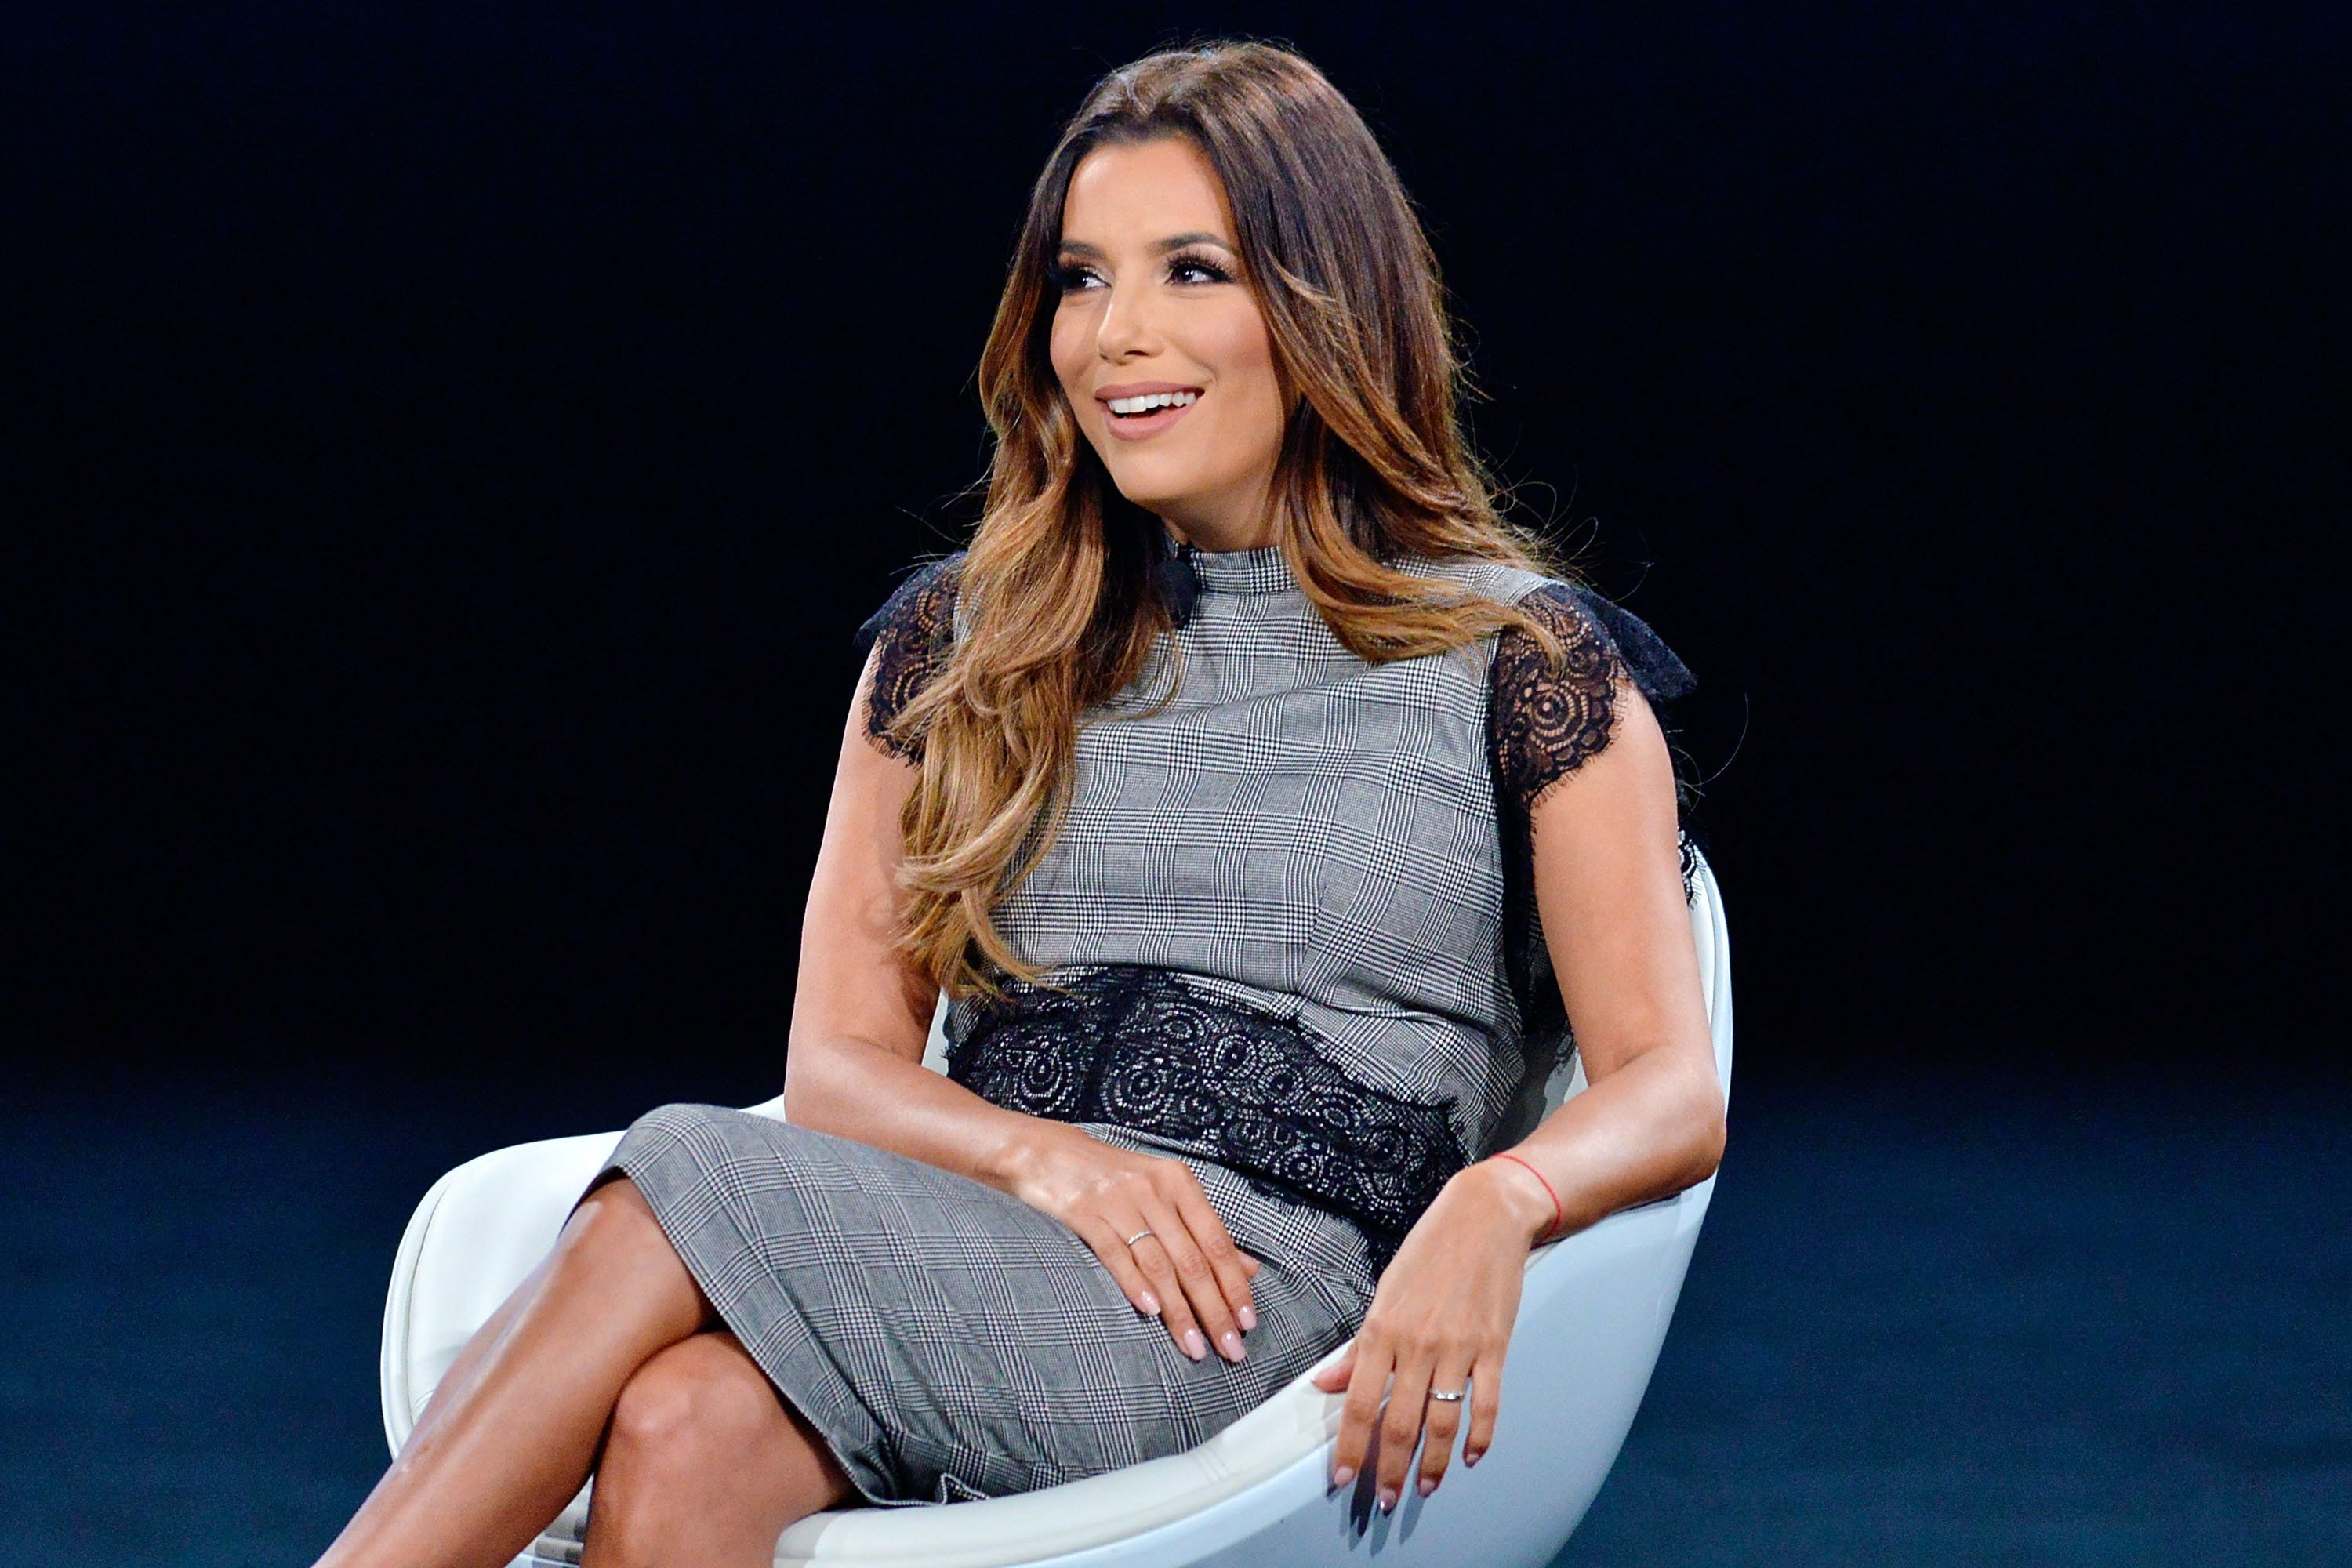 Eva Longoria Forced To Deny She's Pregnant (Because The Media Never Learns,